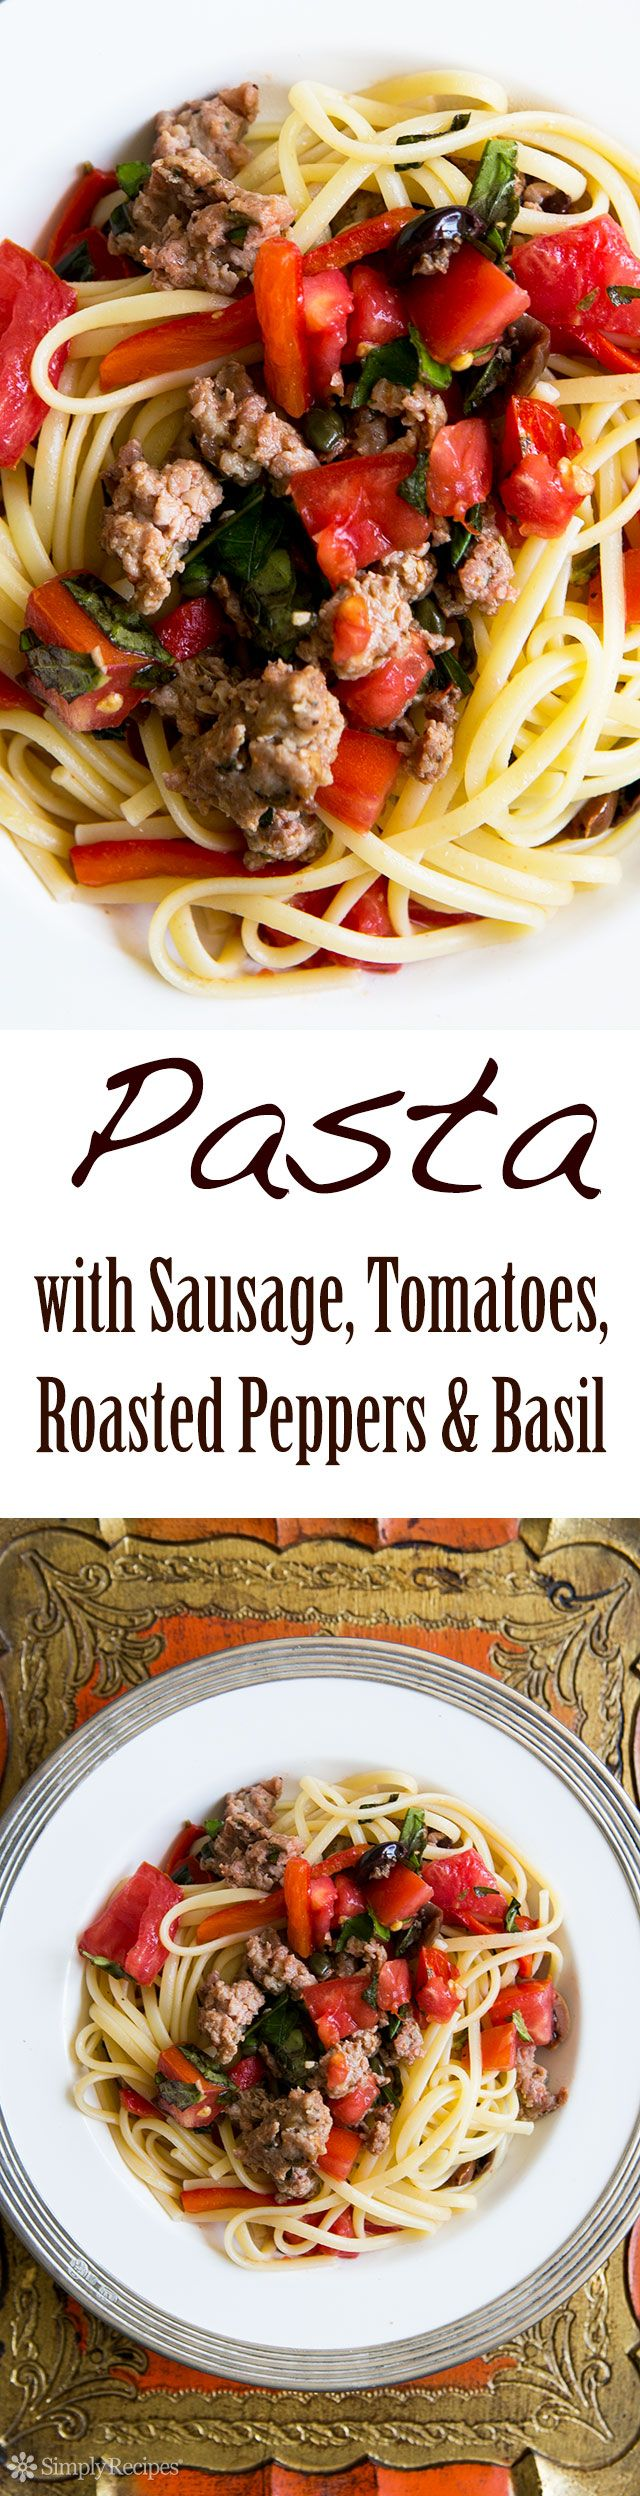 Easy weeknight dinner! Pasta tossed with a quick sauté of Italian sausage, fresh tomatoes, roasted bell peppers, olives, and capers. Start to finish in 30 minutes! On SimplyRecipes.com